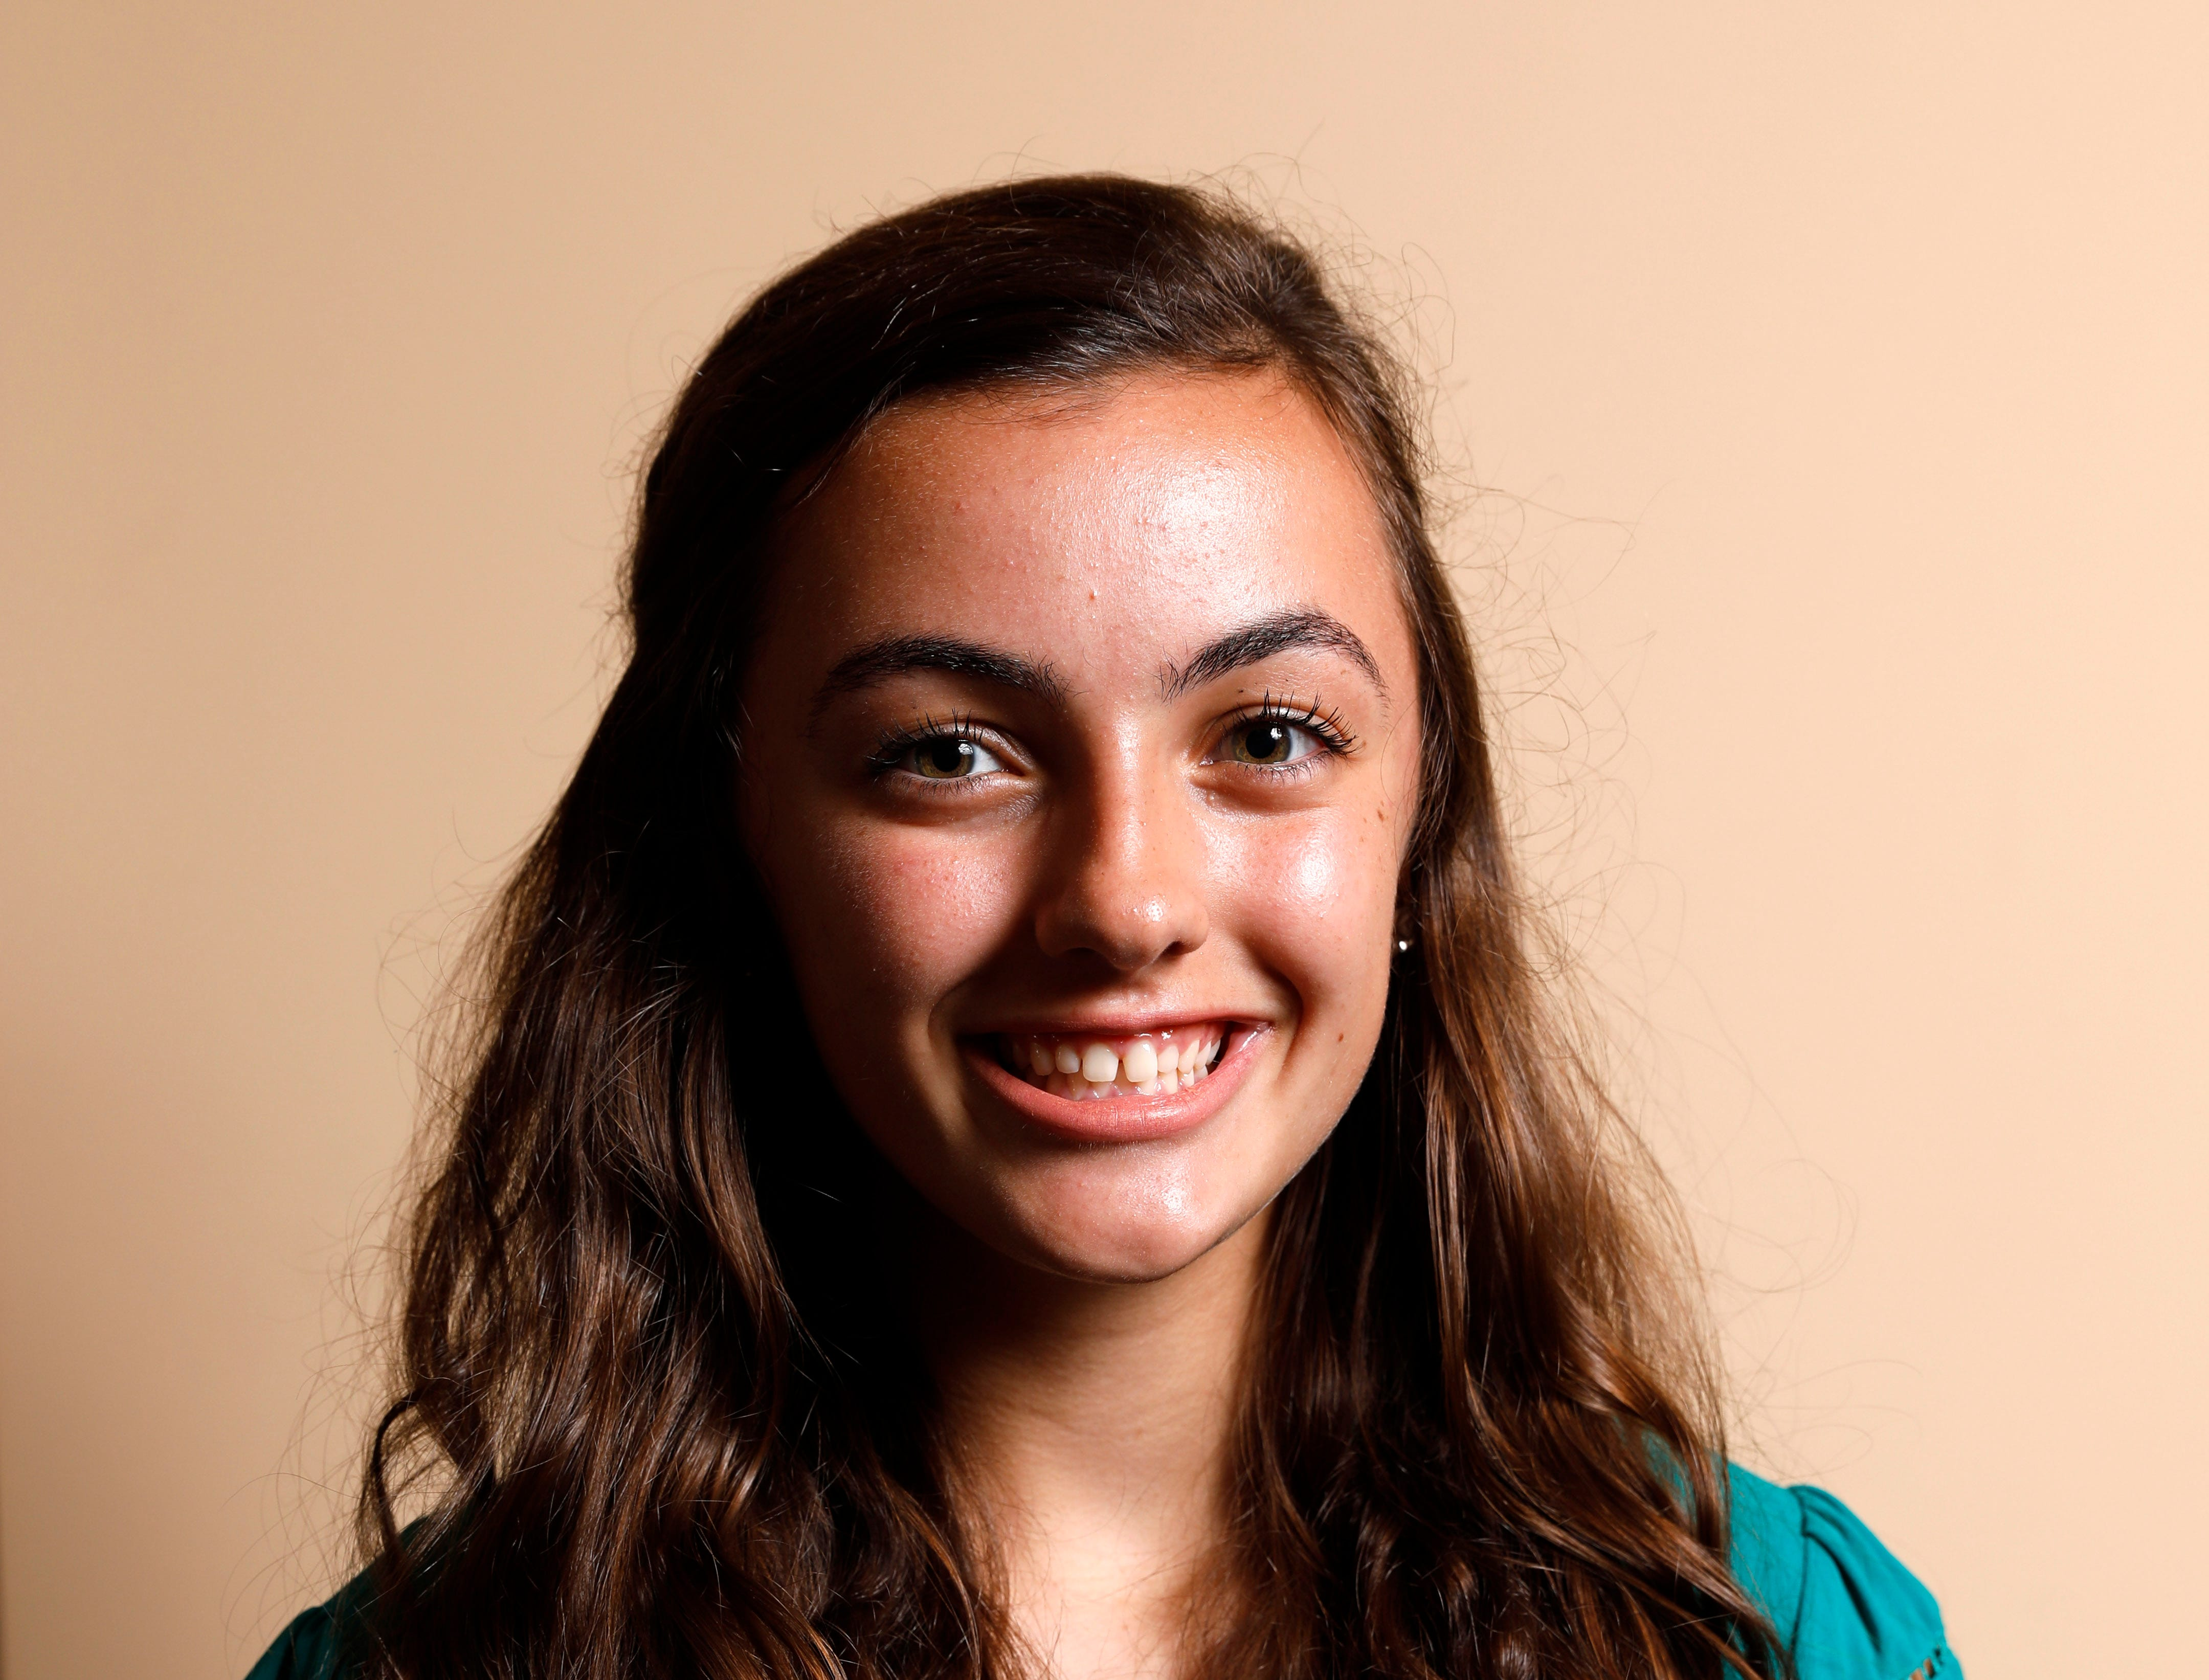 Emmalee Preston,17, daughter of Trish and Ken Preston. She attends Canal Winchester High School and is a member of Green Extreme 4-H Club.